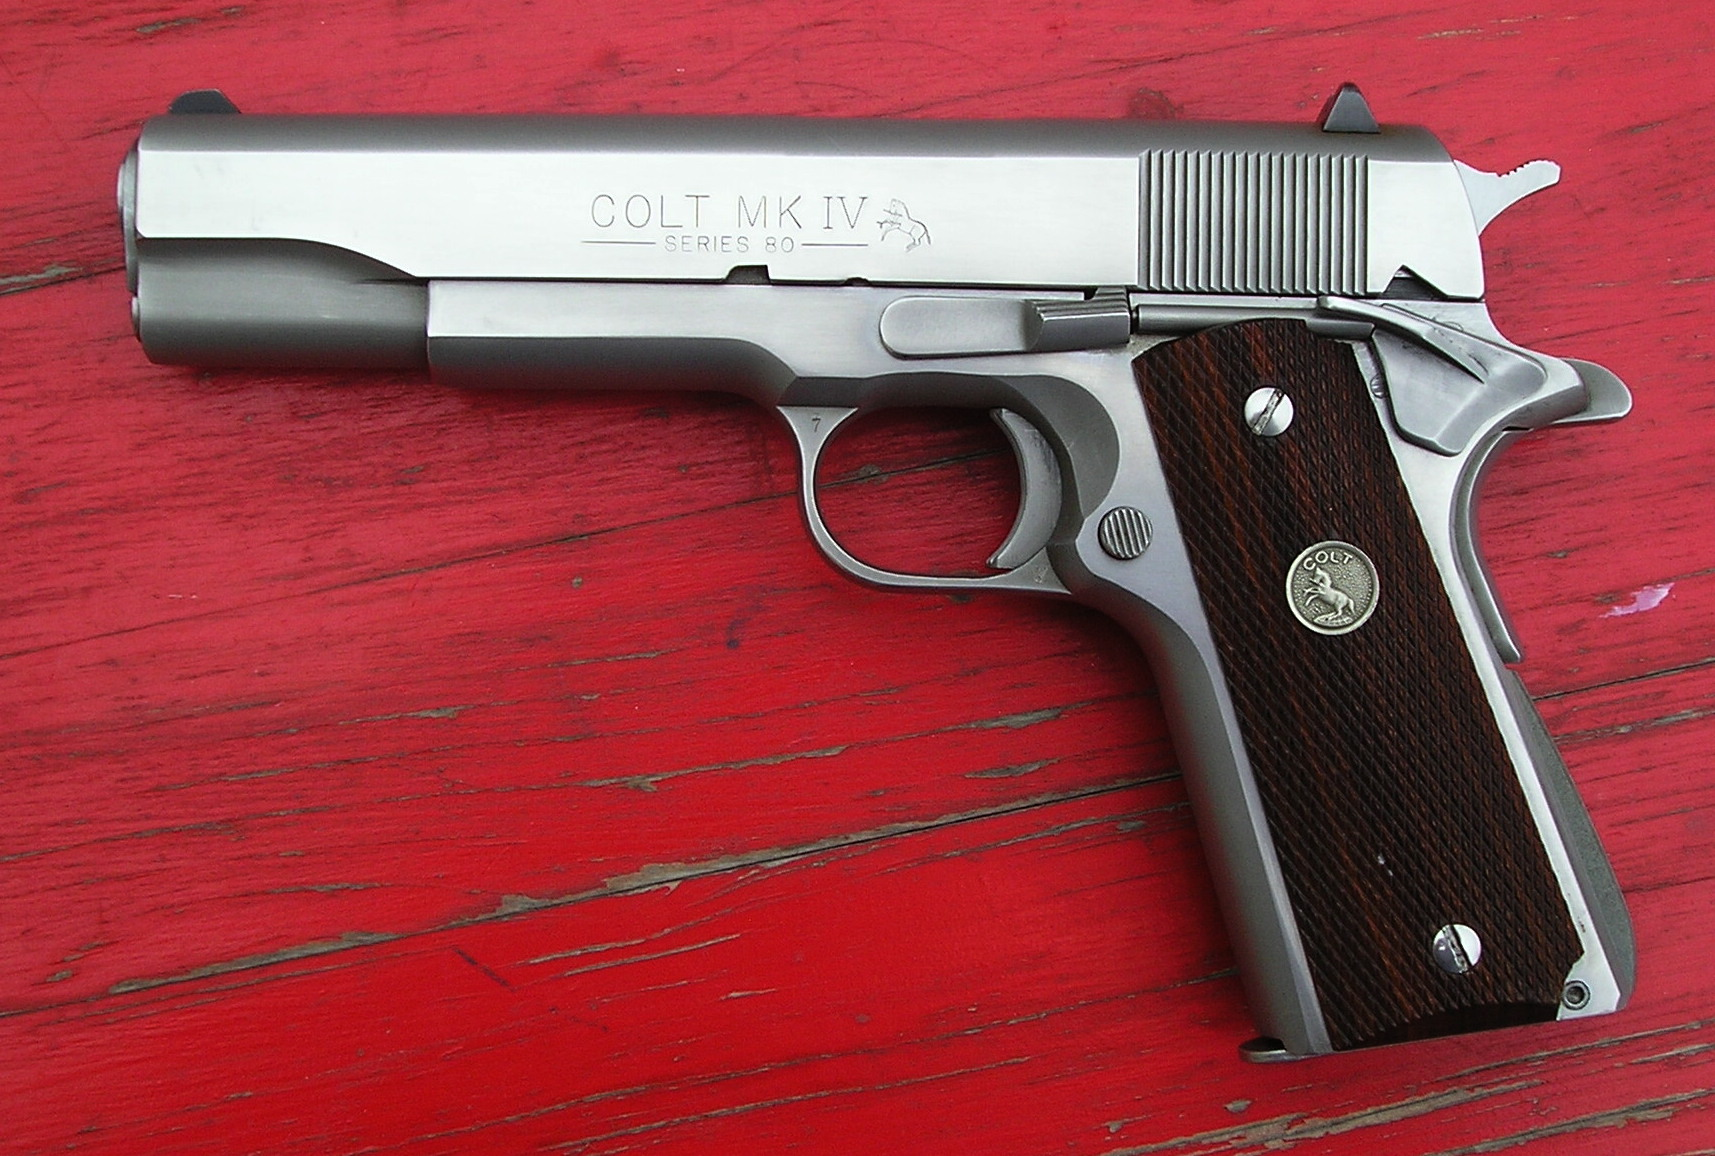 """The """"addiction"""" is STILL STRONG with this one! OK, """"Cough up"""" your 1911s !!-1987.jpg"""